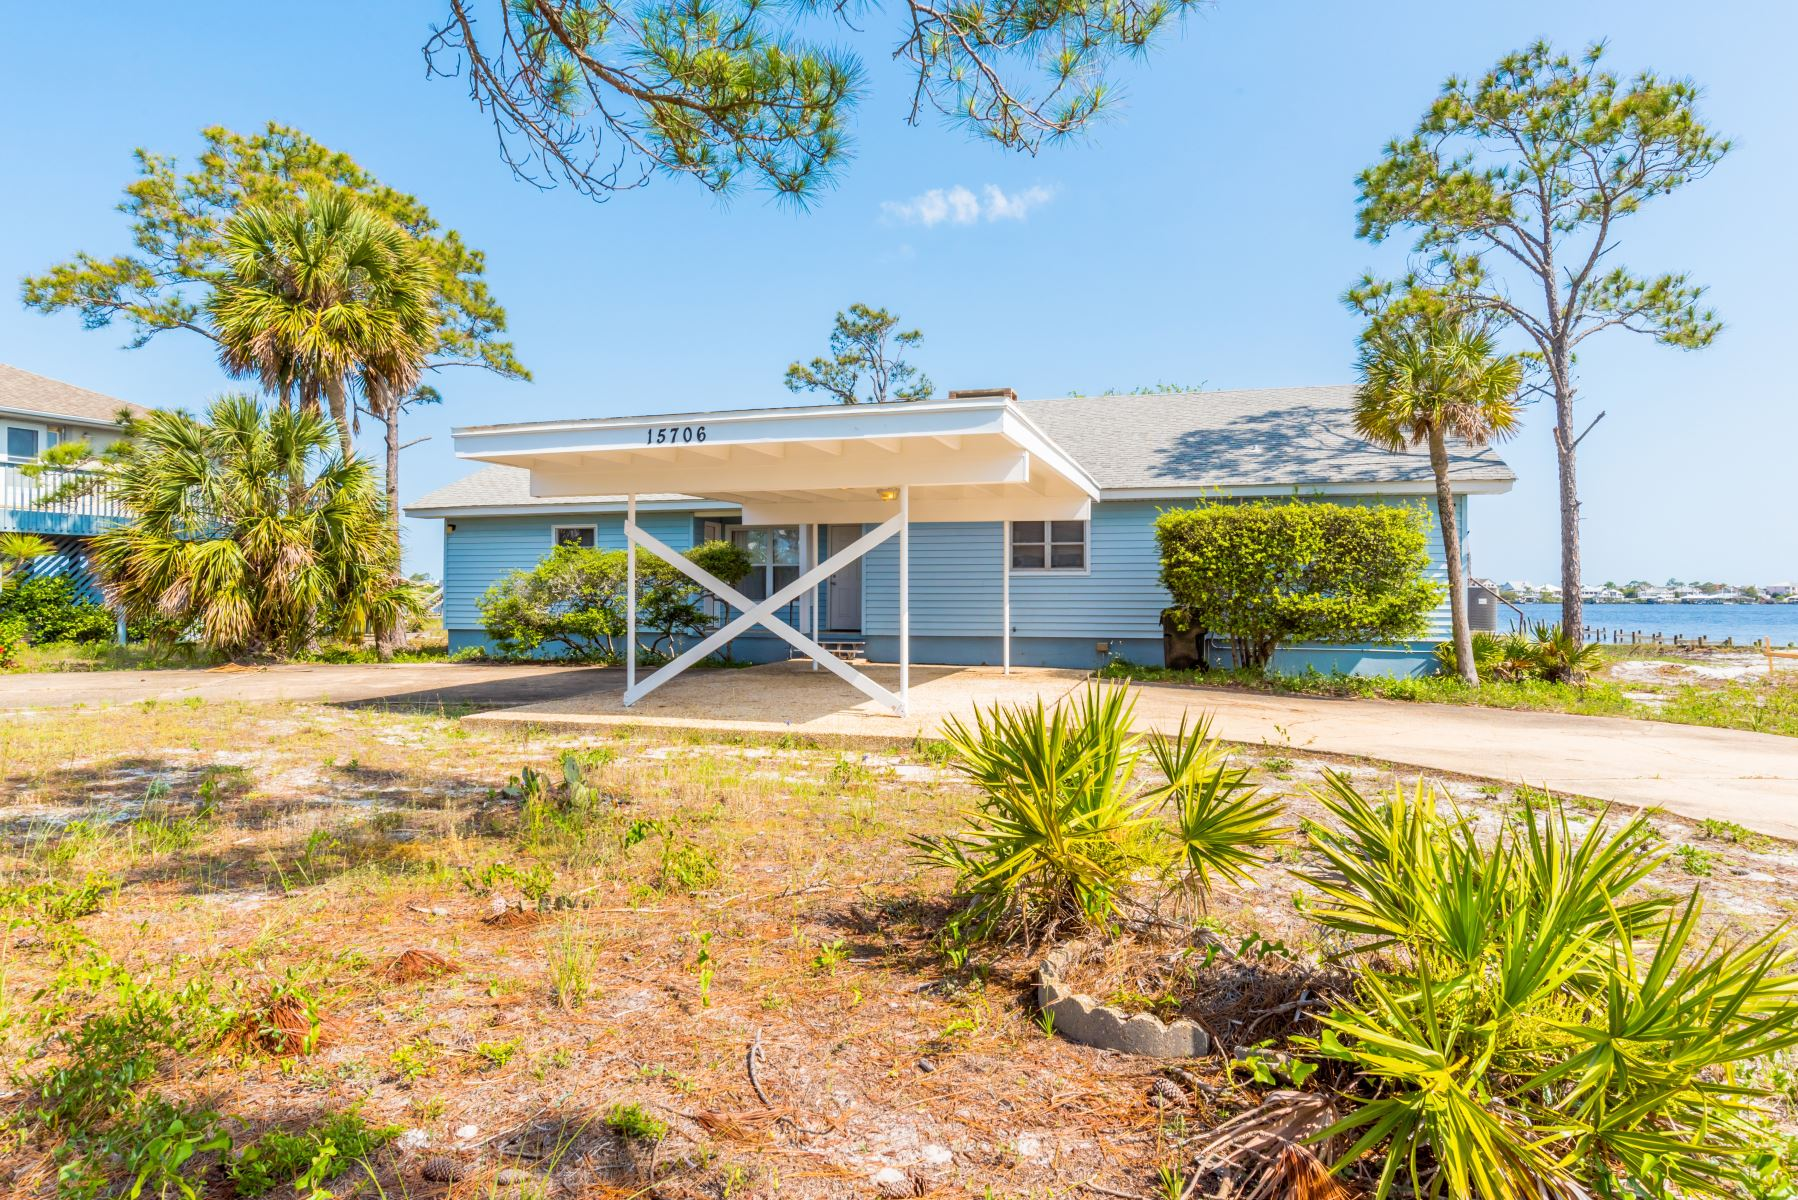 Riverfront Perdido Key house rentals along the Ole River